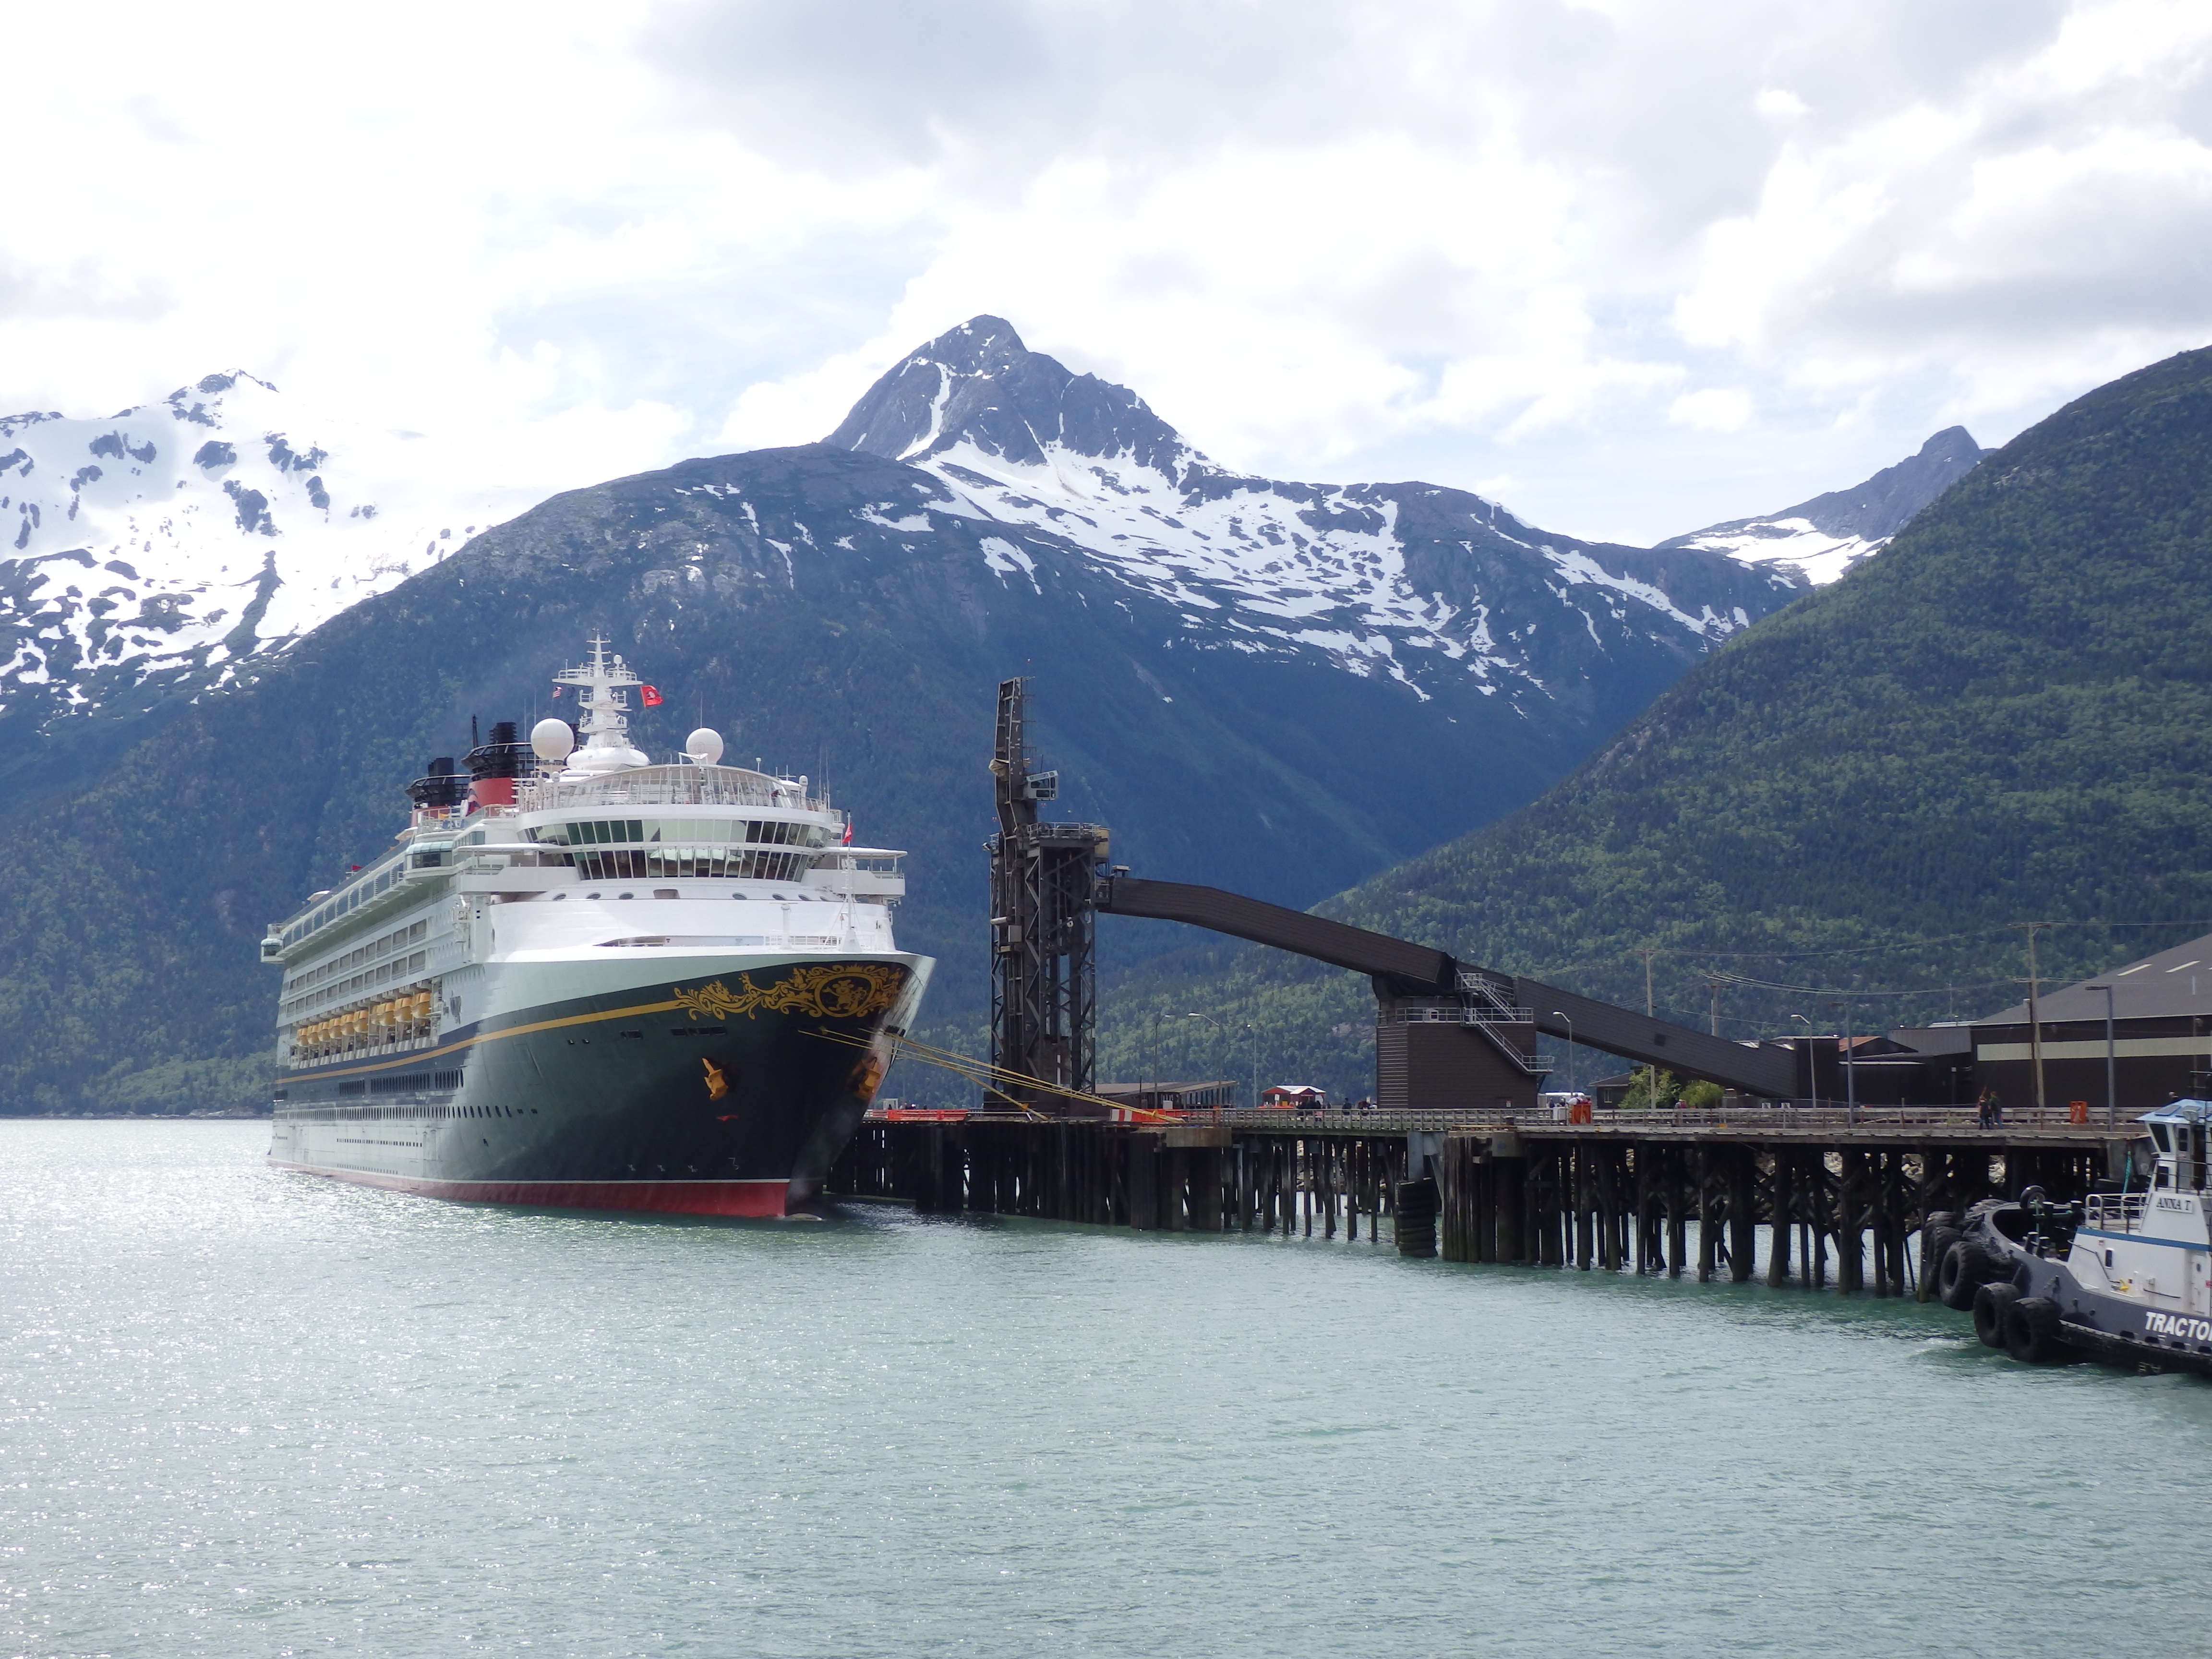 A cruise ship moored at Skagway's ore dock. Port consultants recommend Skagway act immediately to modify the ore dock for larger vessels. (Emily Files)